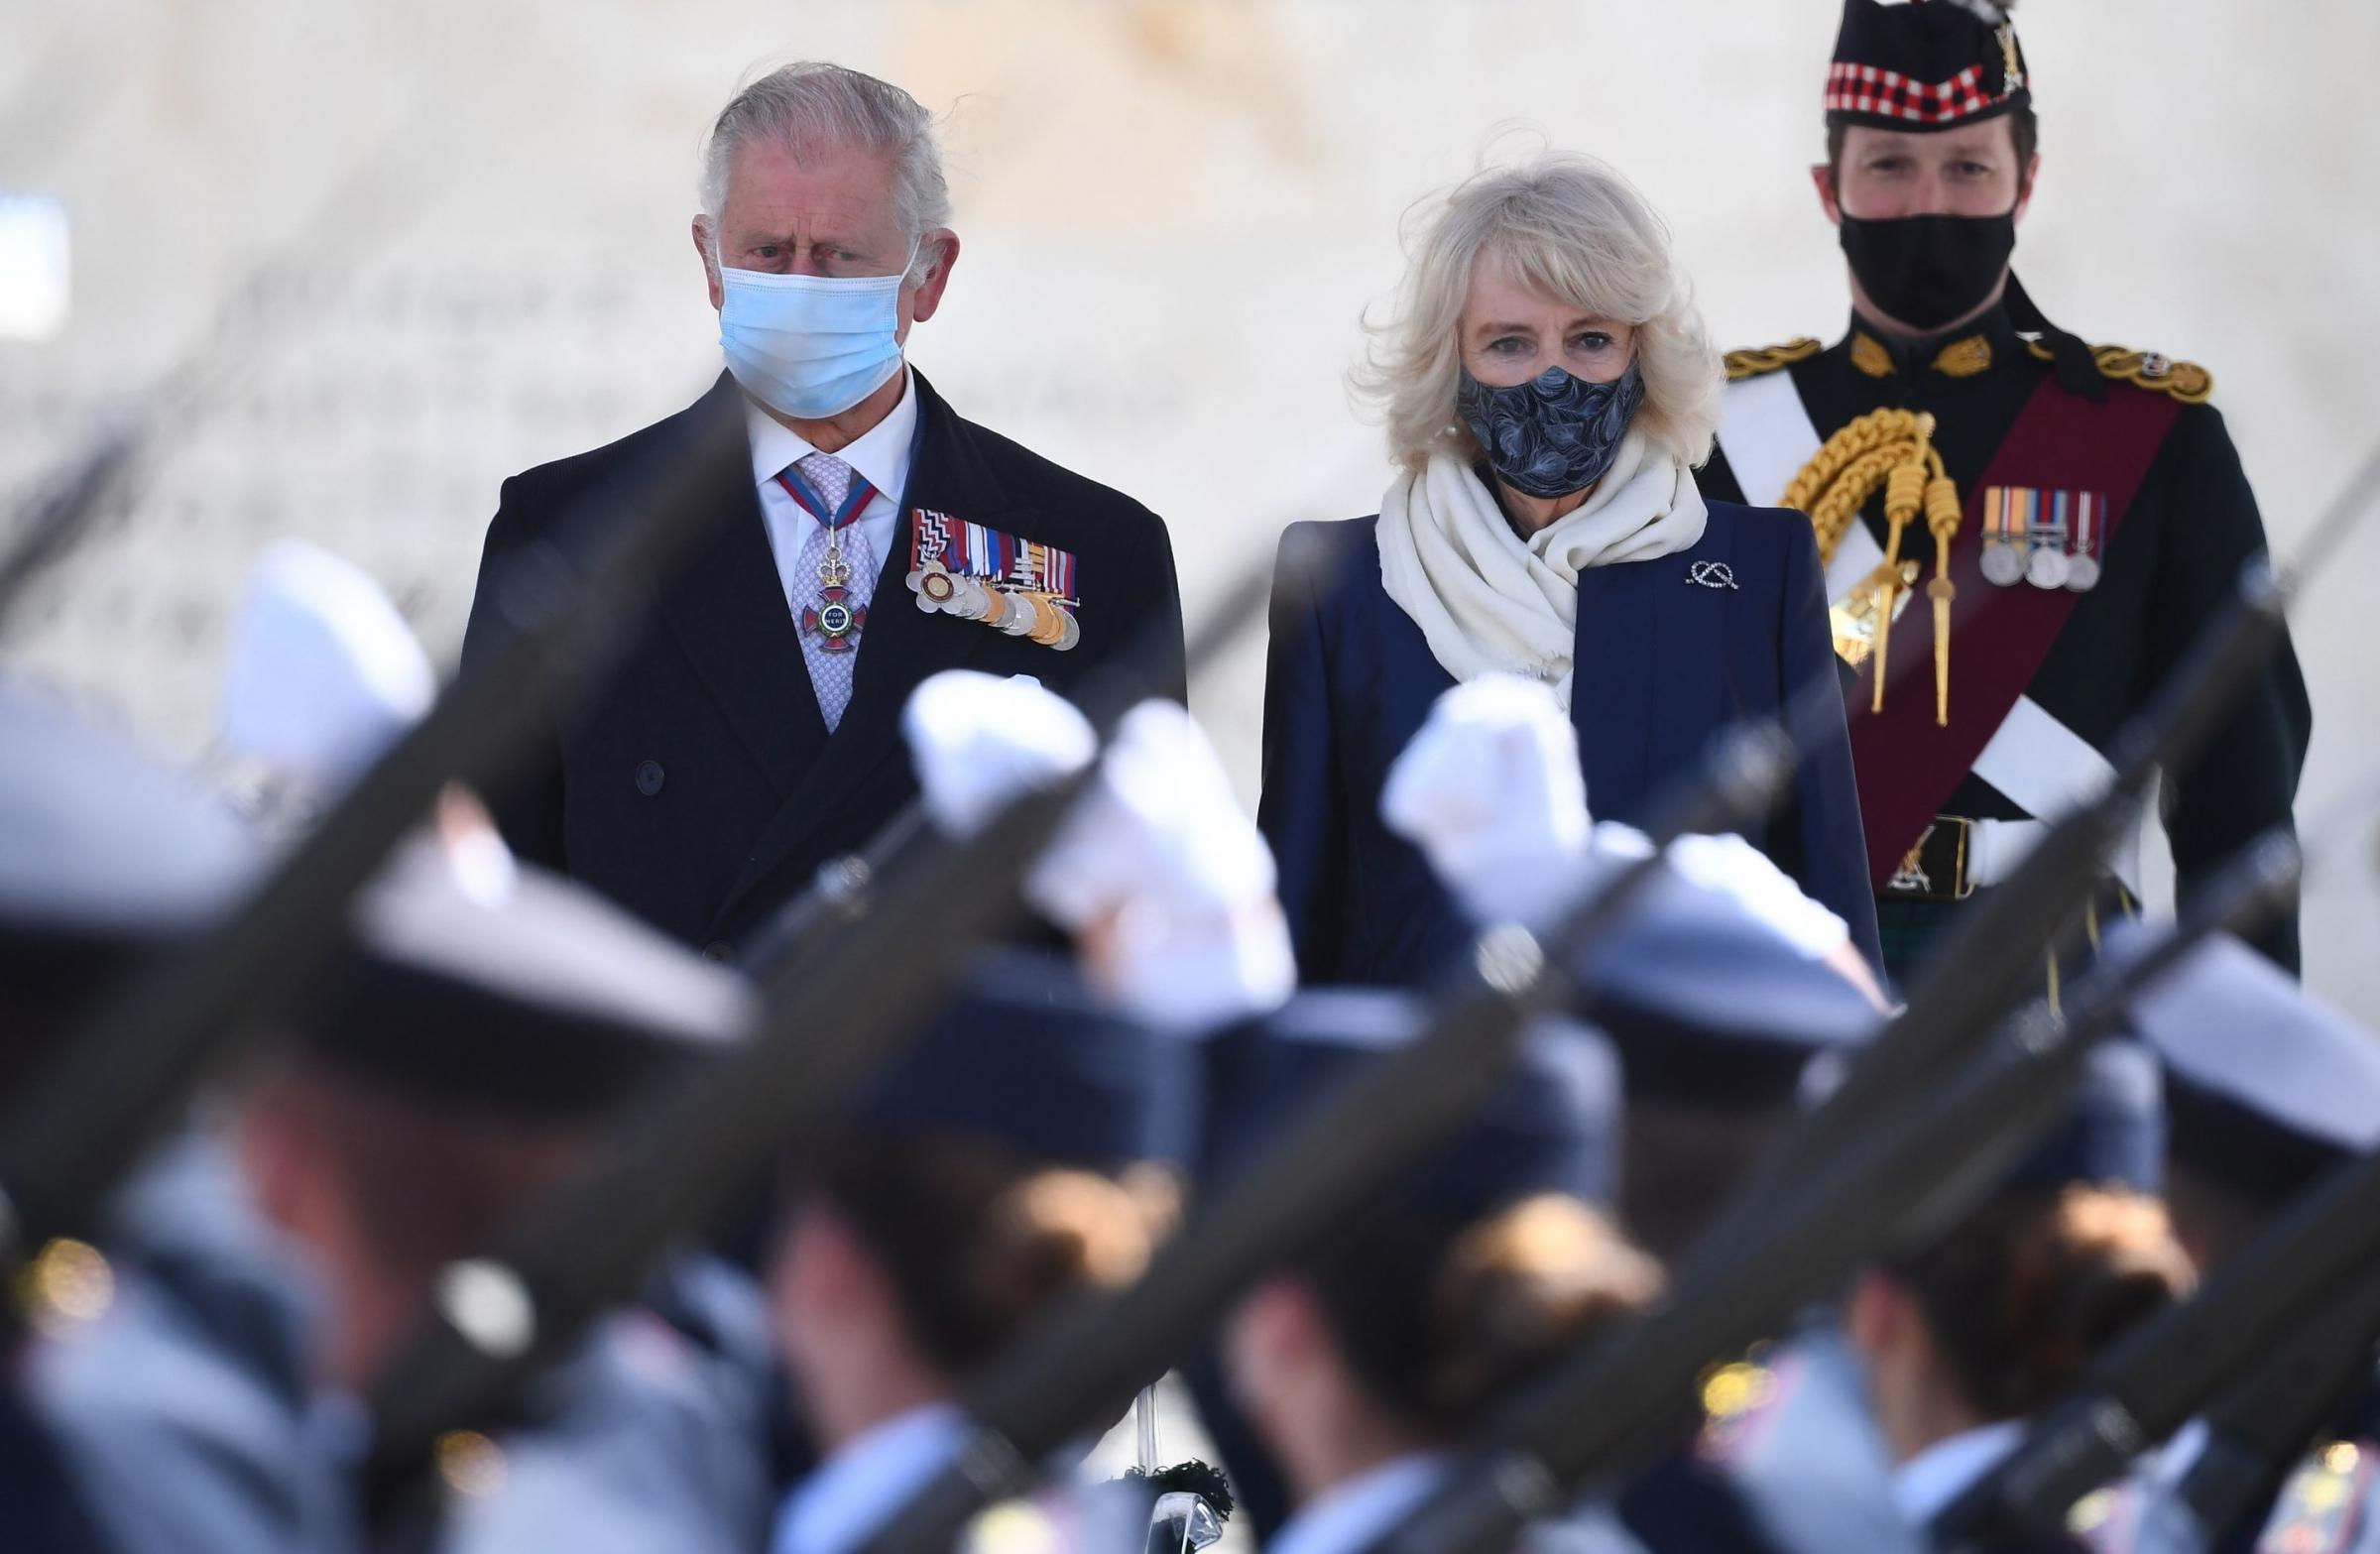 The Prince of Wales and the Duchess of Cornwall attending the Independence Day Military Parade in Syntagma Square, Athens, during a two-day visit to Greece to celebrate the bicentenary of Greek independence Picture: VICTORIA JONES/PA